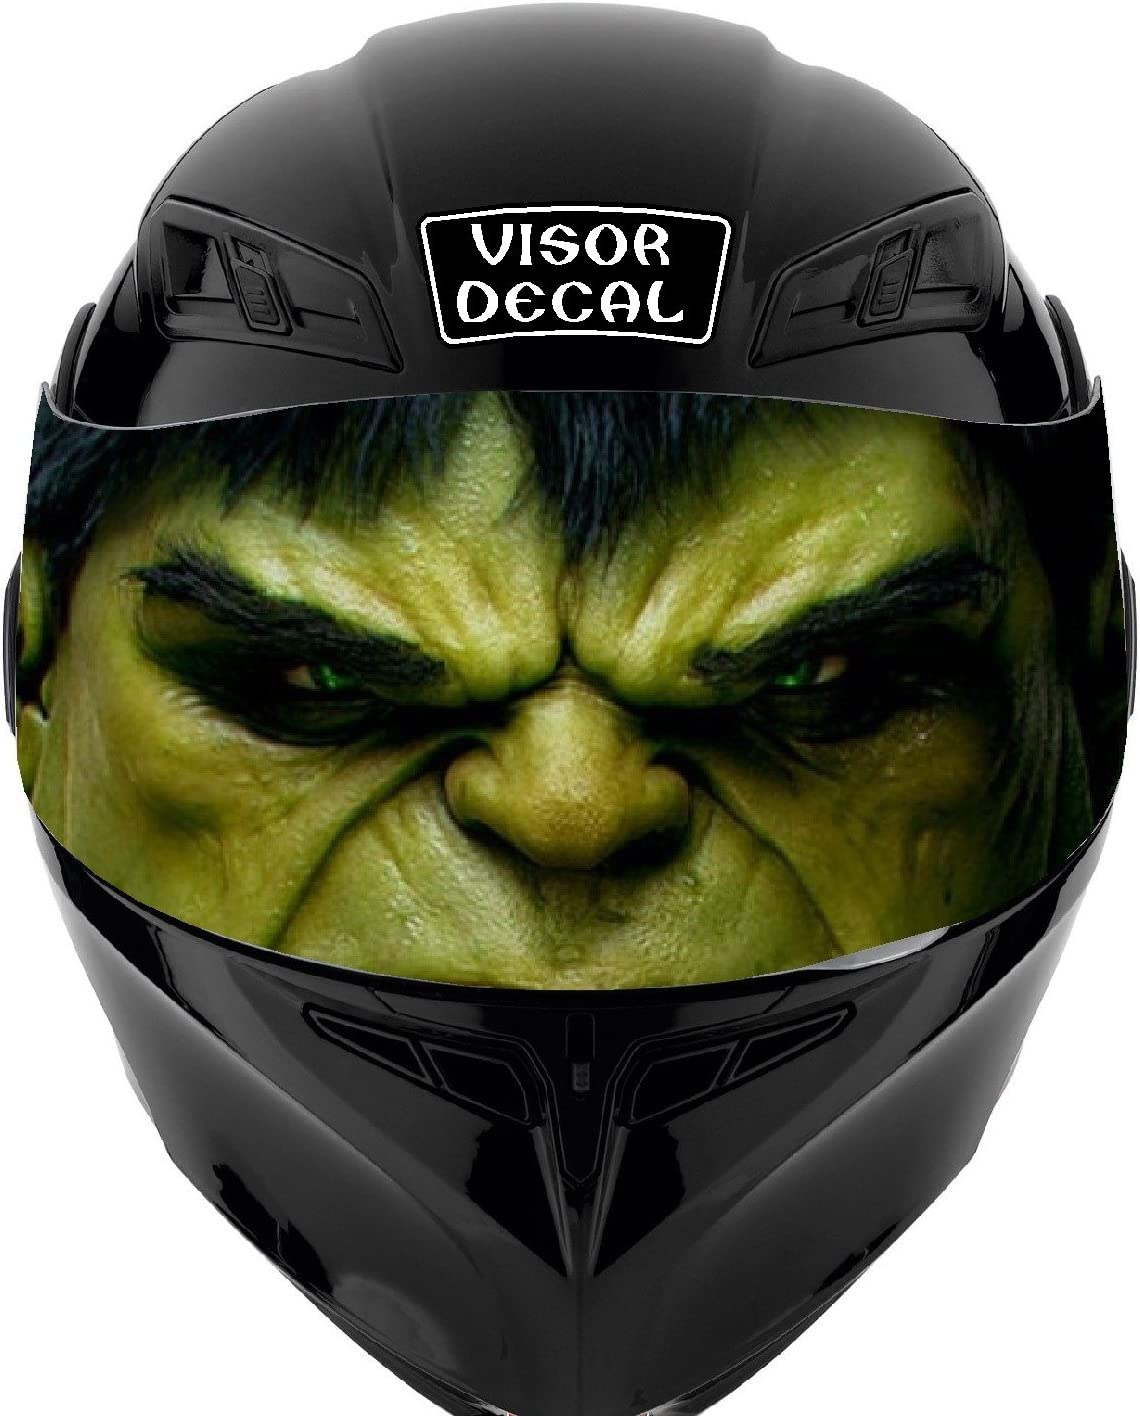 V10 Hulk VISOR TINT DECAL Graphic Don't miss the Genuine campaign Icon Helmet Sticker Shoe Fits: